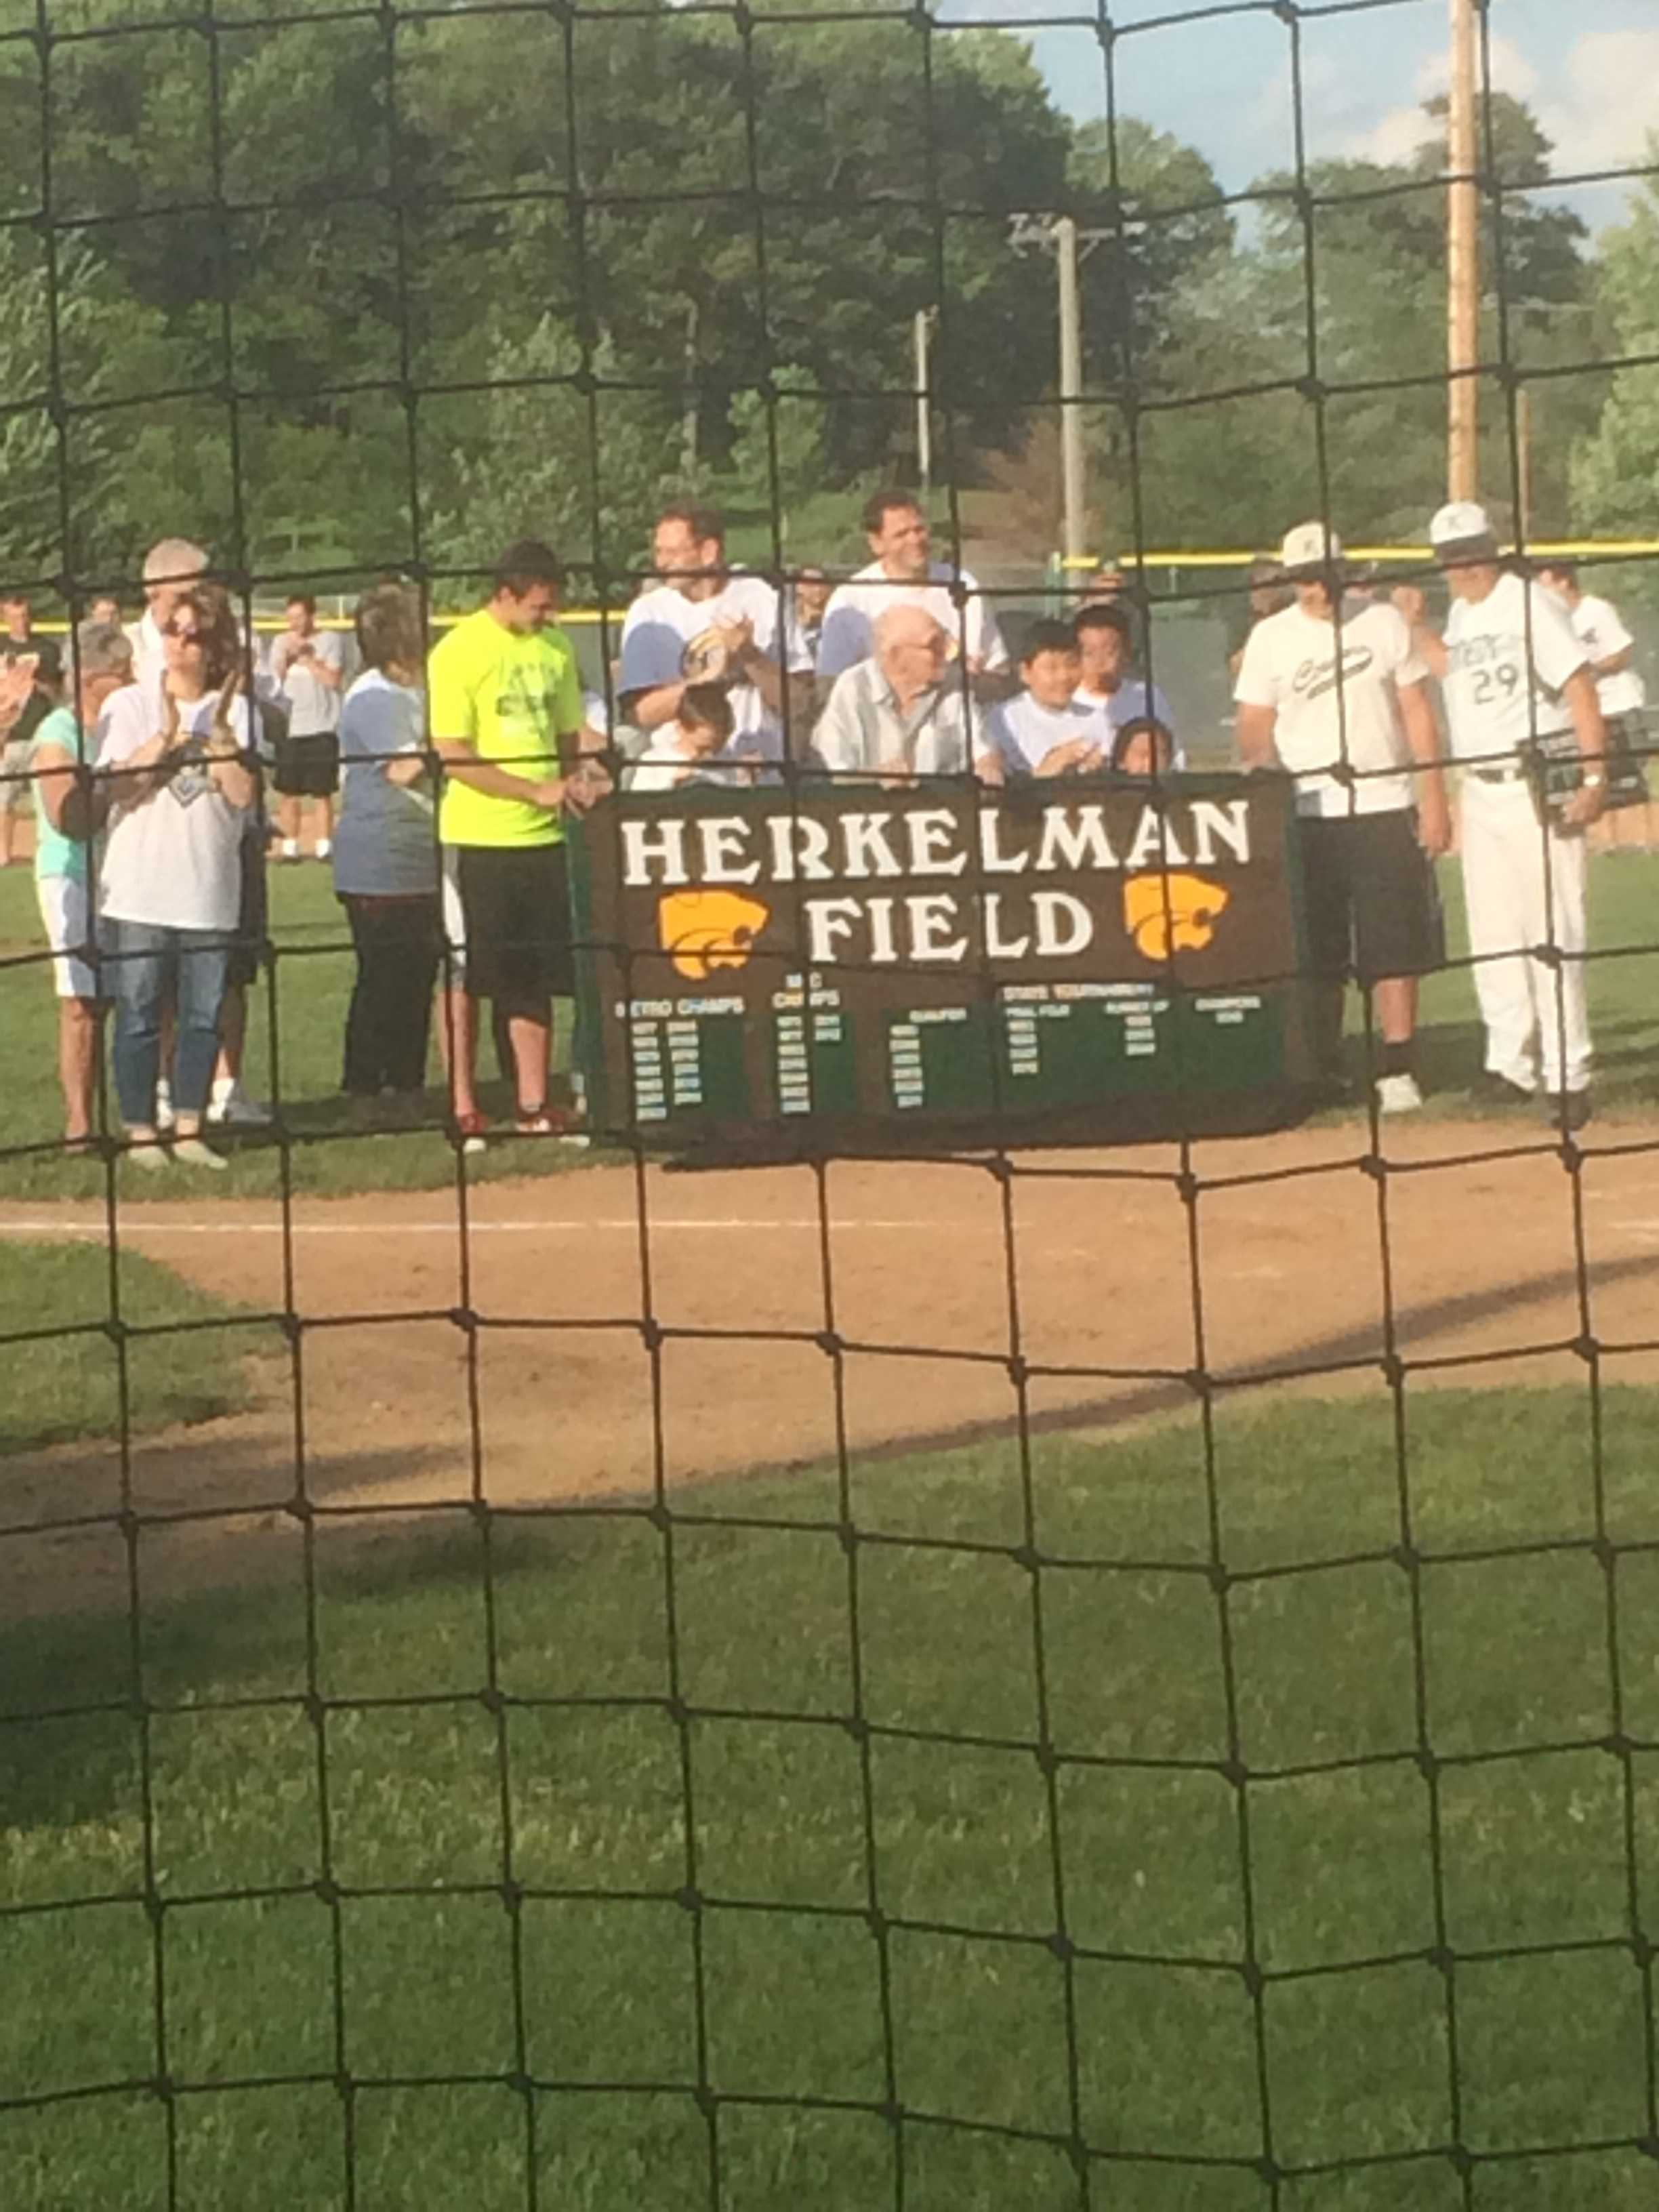 Coach Bill Herkelman and family honored with the naming of field.